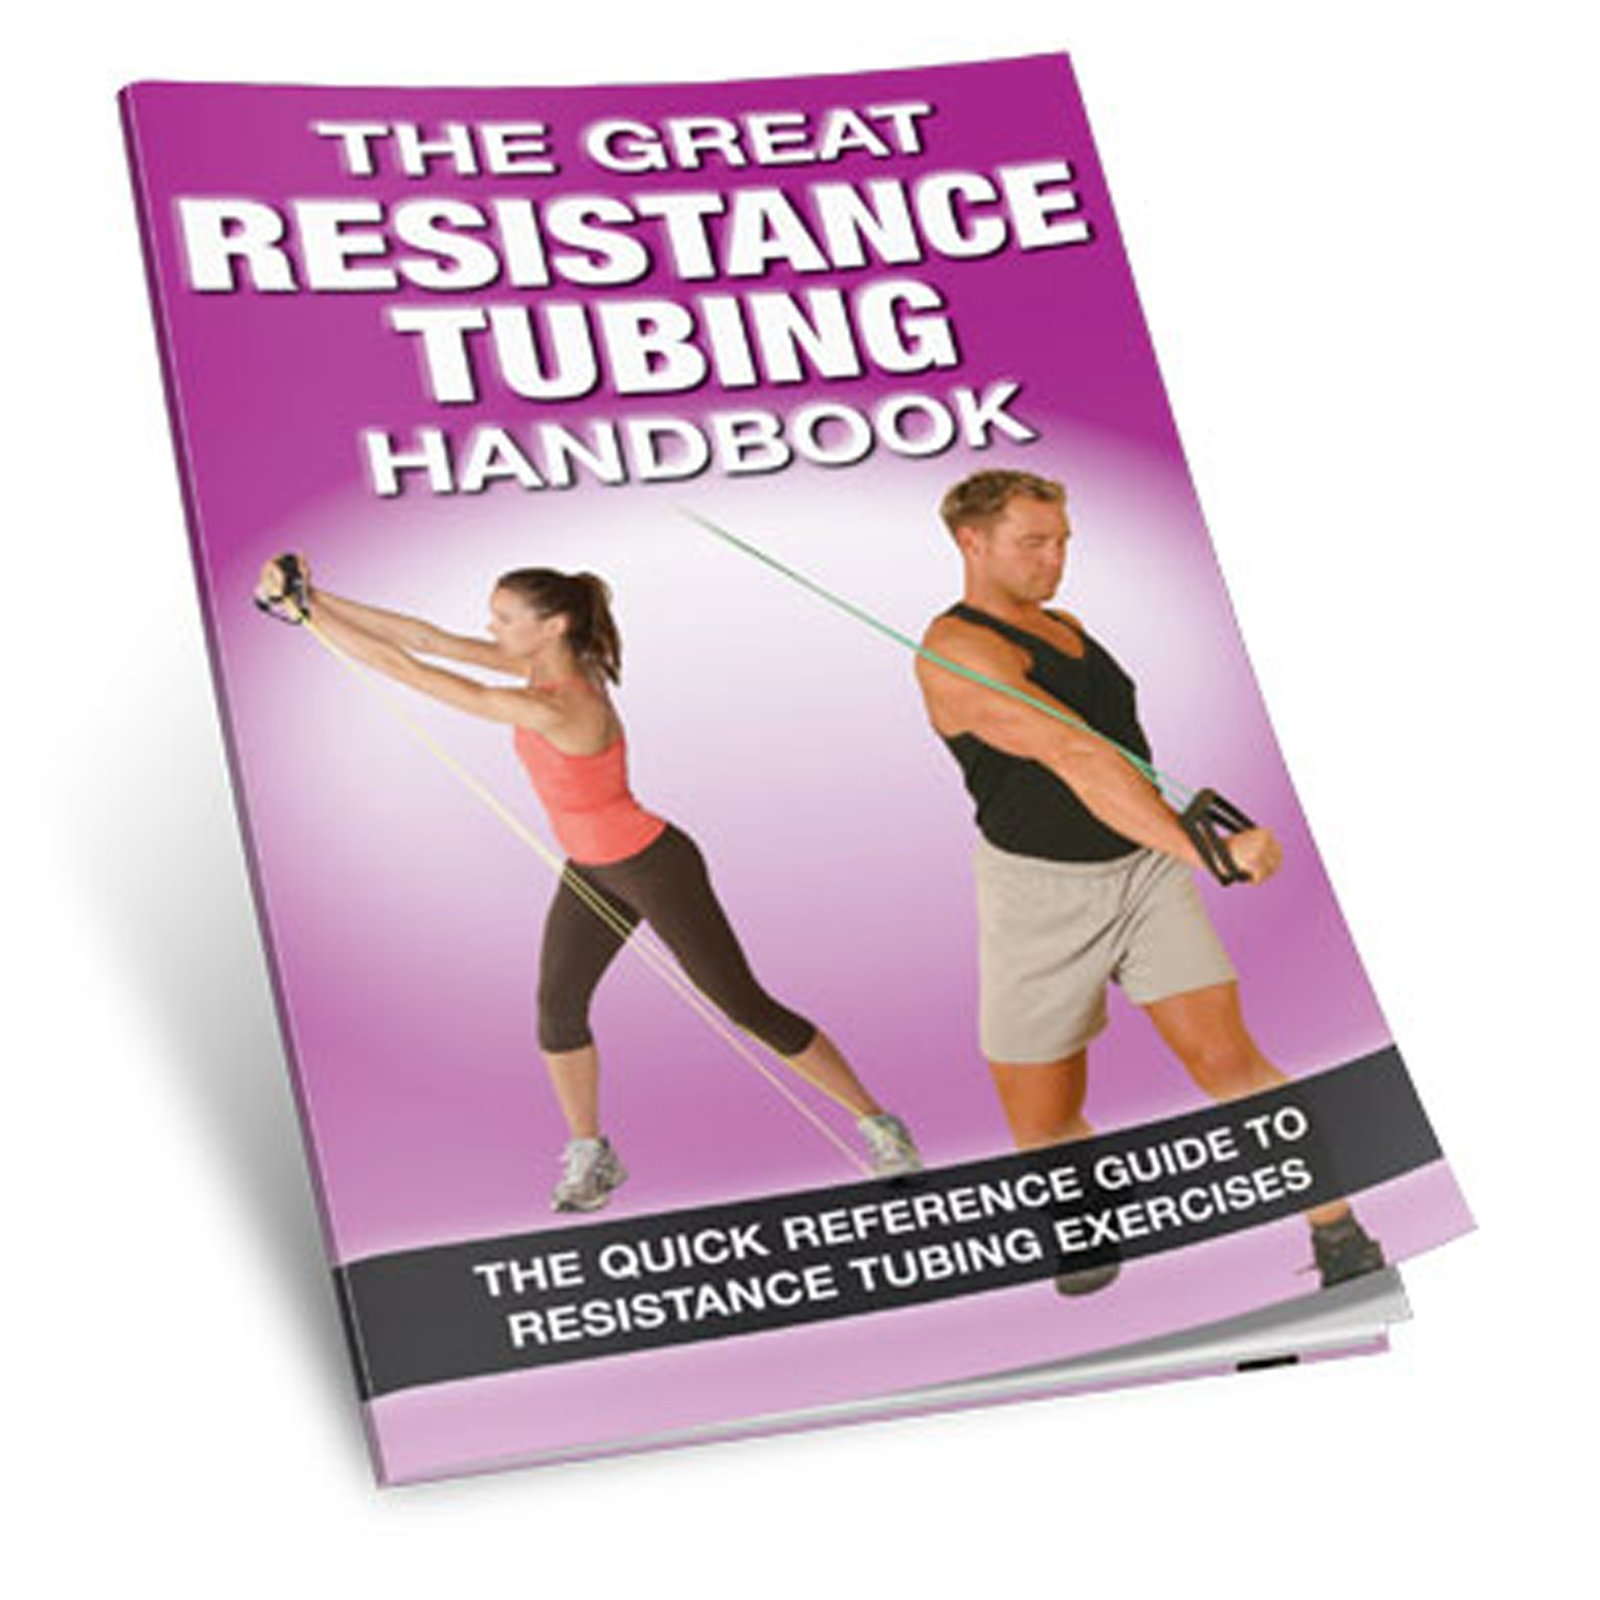 Productive Fitness The Great Resistance Tubing Handbook Exercise Reference Guide